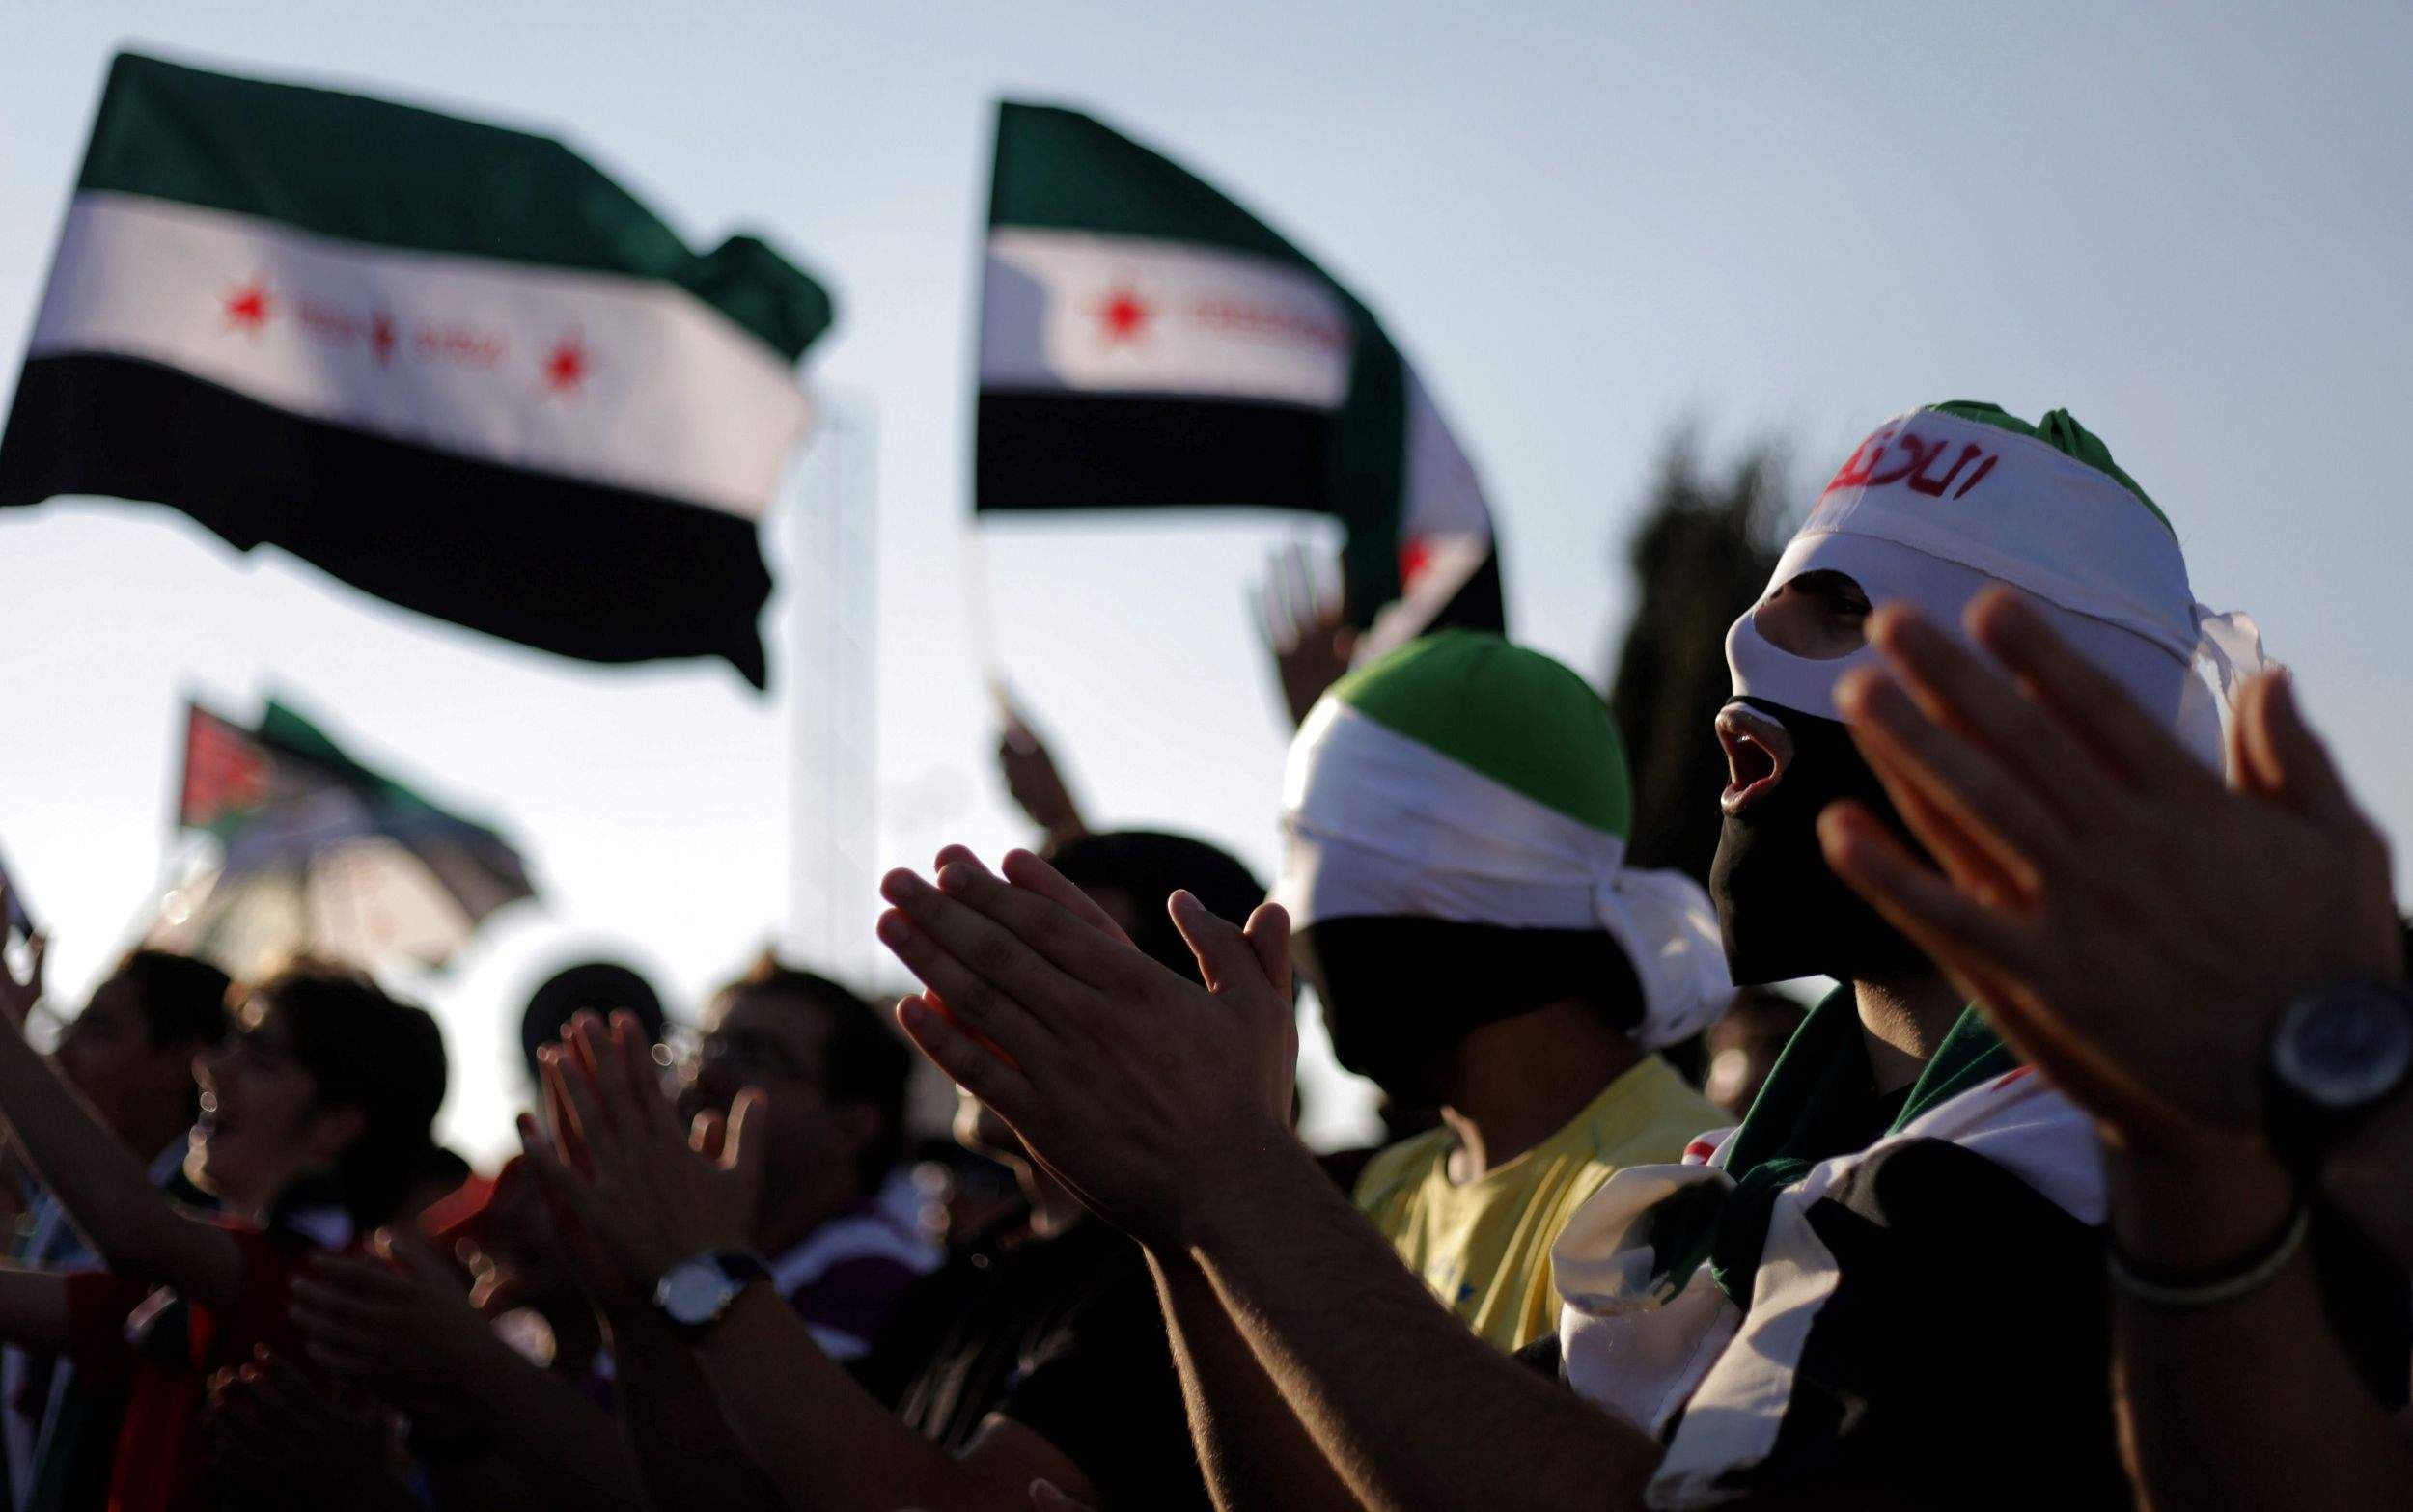 Demonstrations against the Syrian regime in the capital of Jordan, Amman, in 2011 (AP)